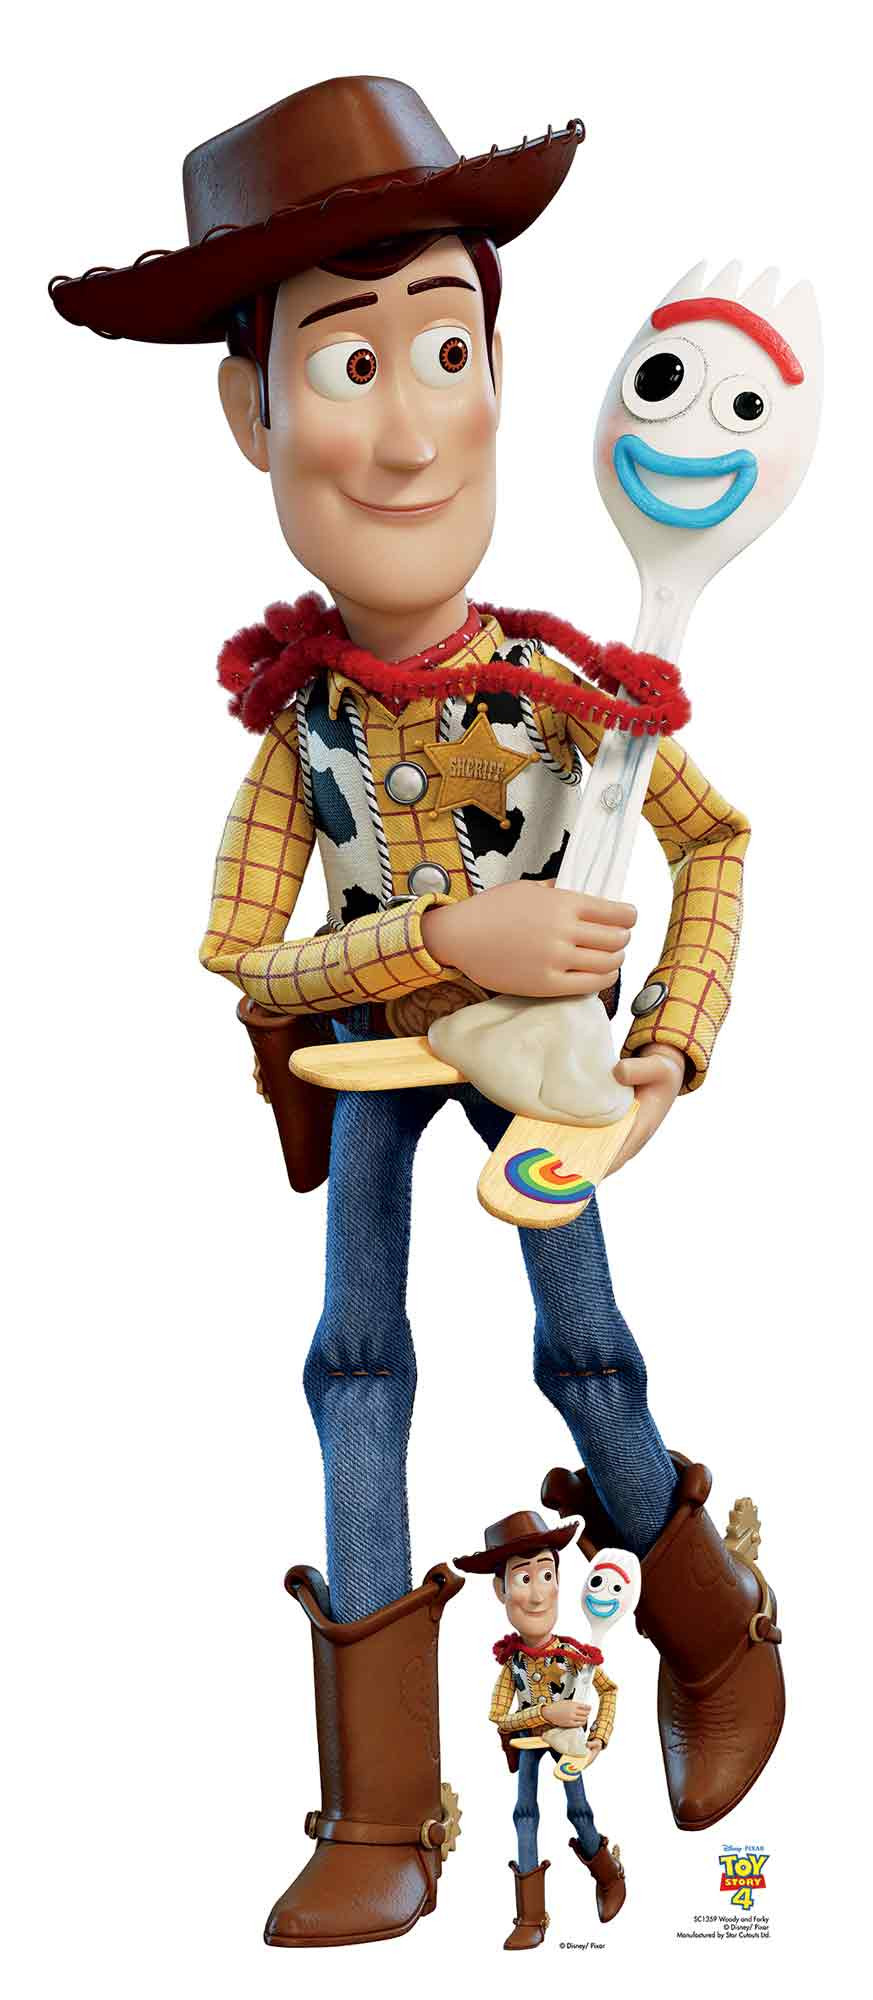 Figurine en carton taille réelle Woody et Forky Toy Story 4 H 164CM